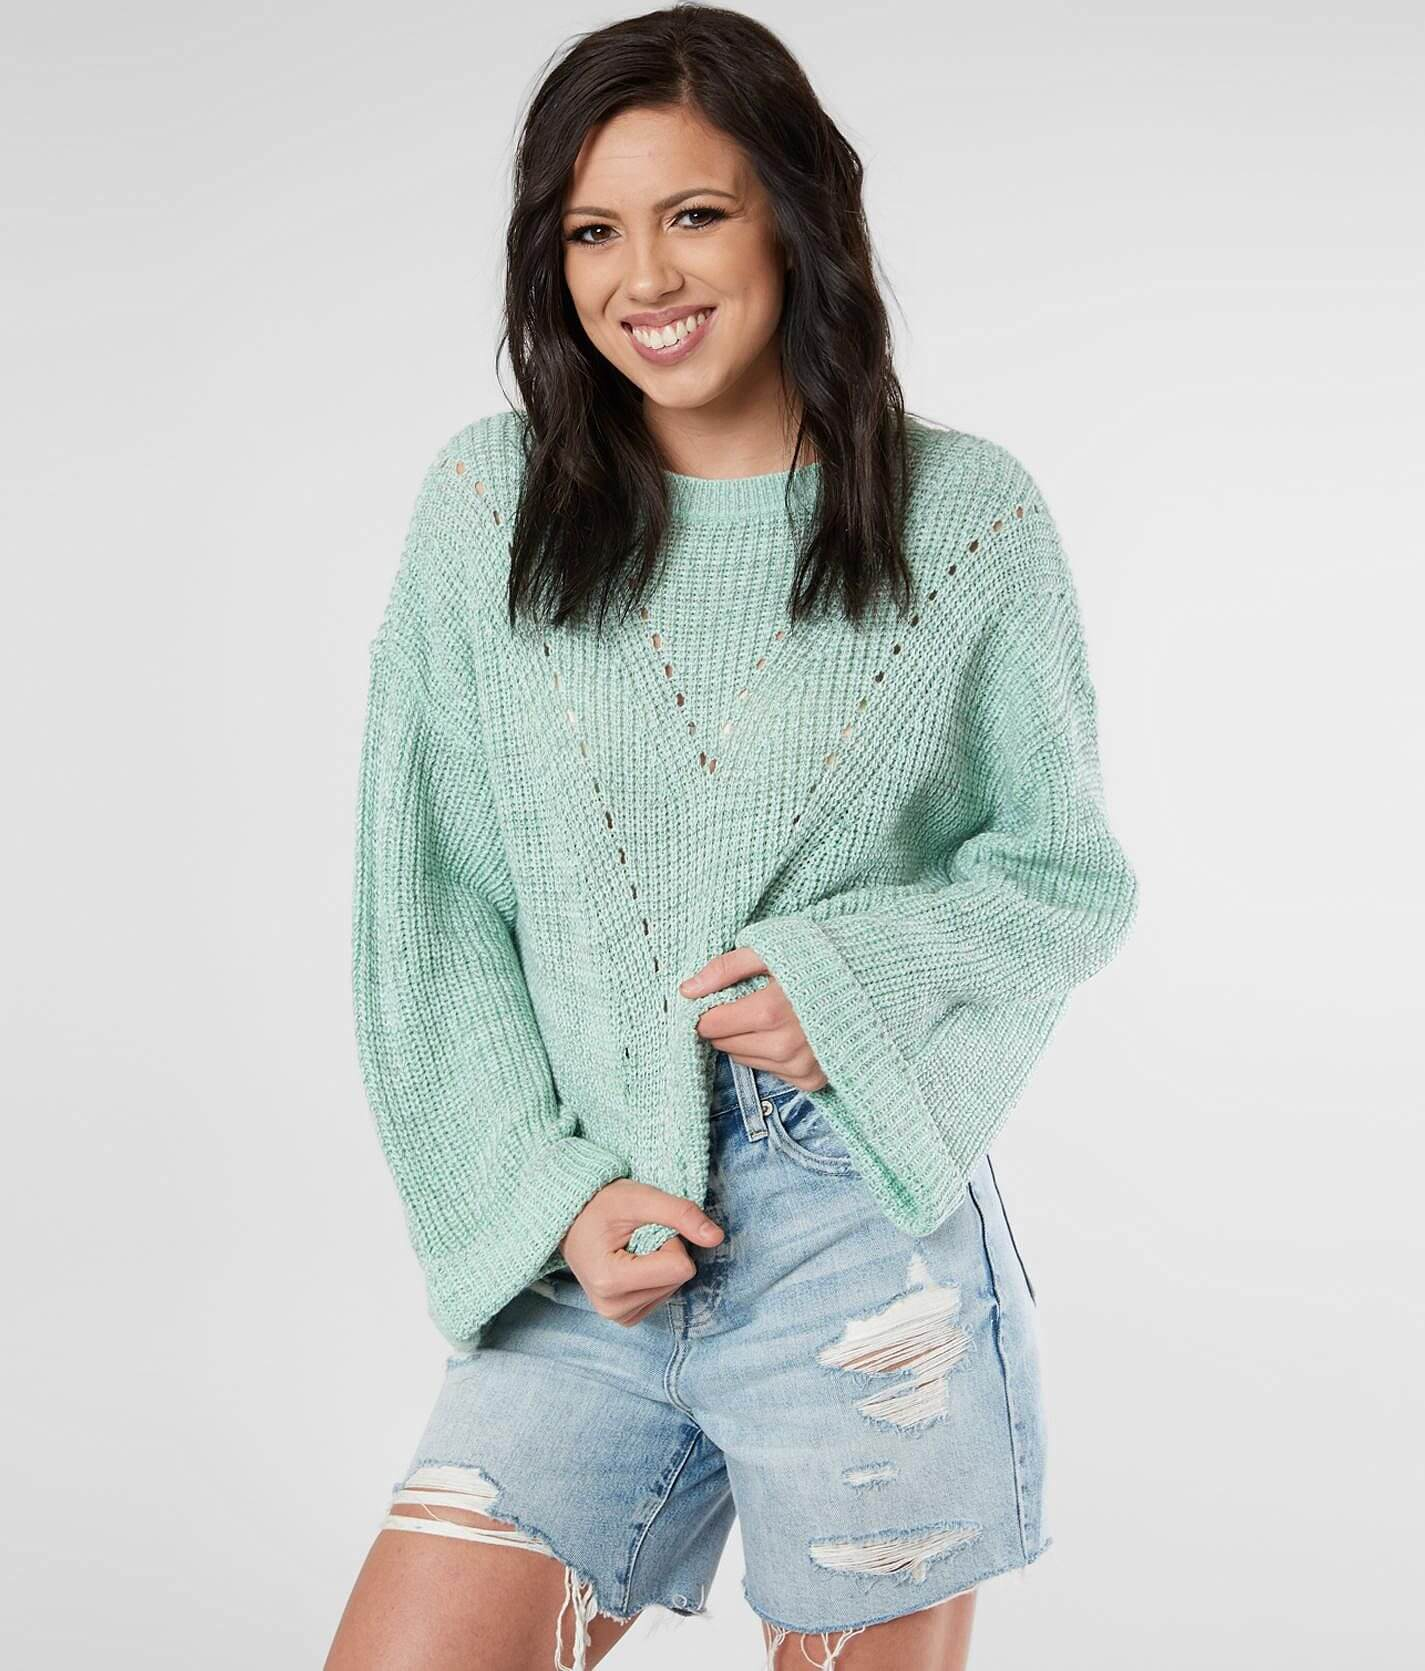 Open Weave Cropped Sweater by Daytrip